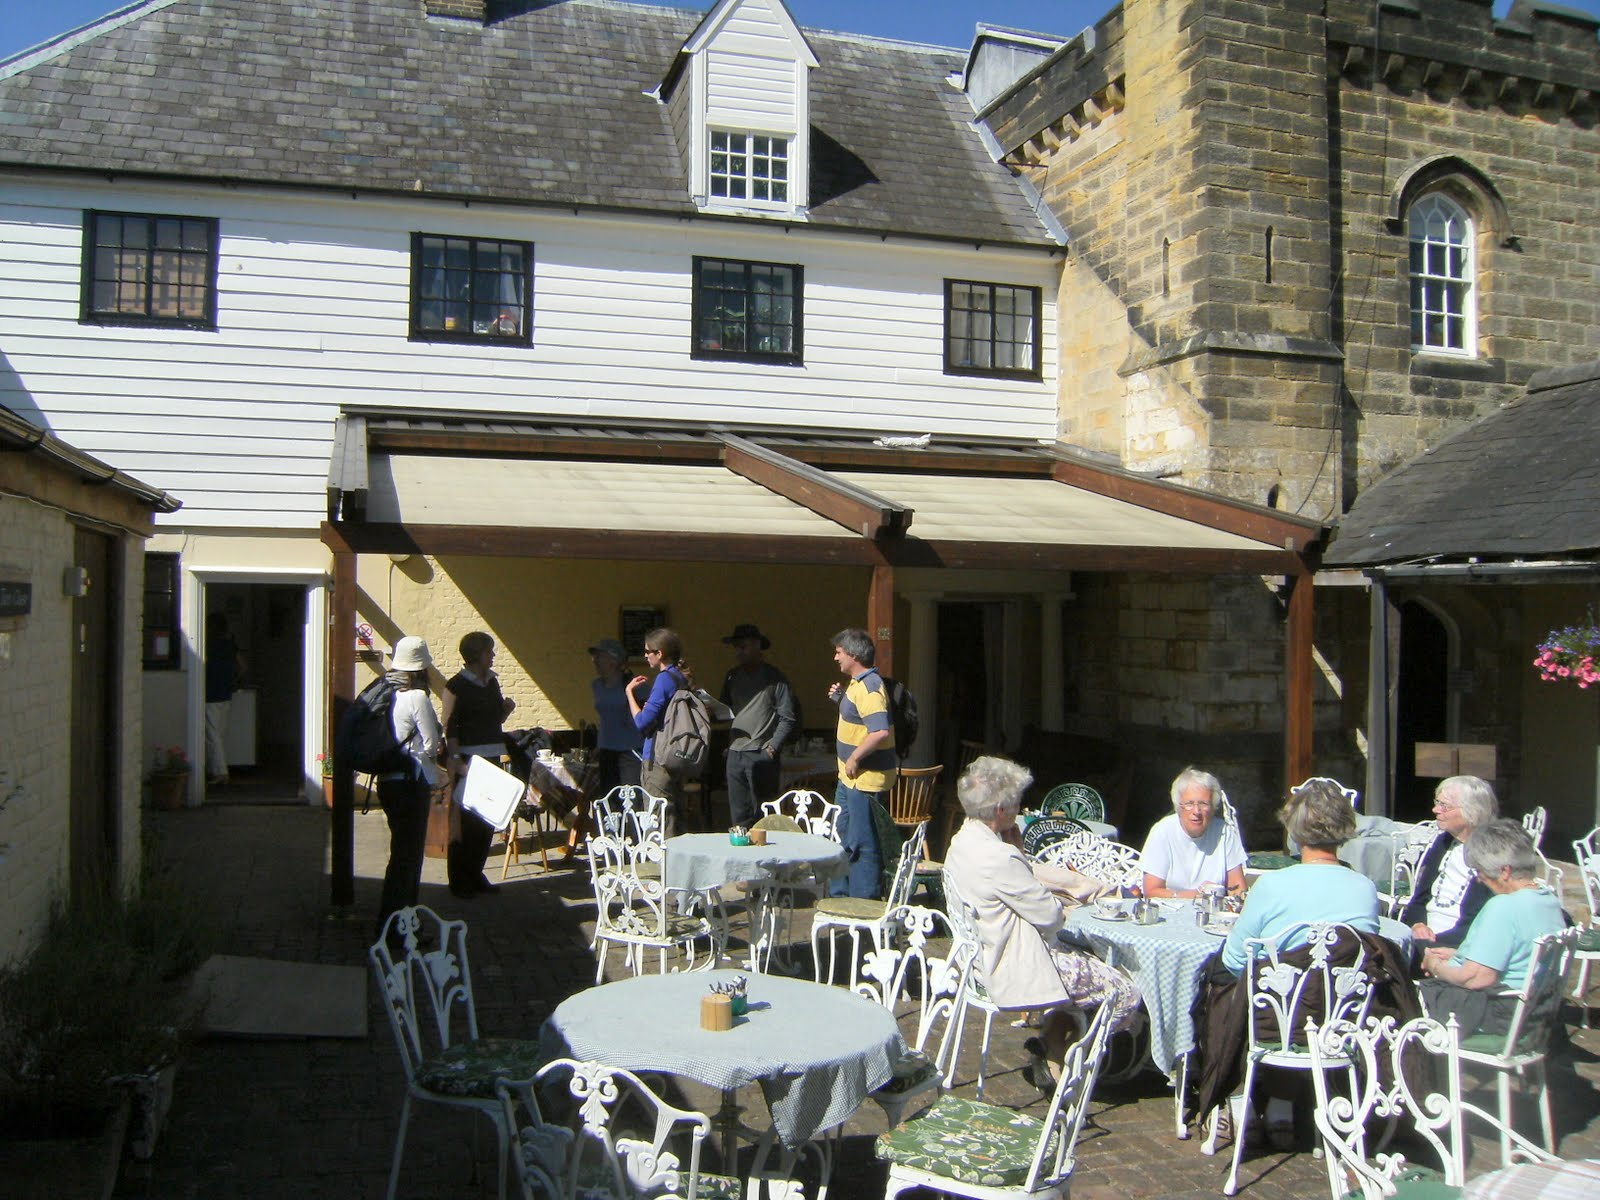 1006160025 Courtyard tearoom at Chiddingstone Castle